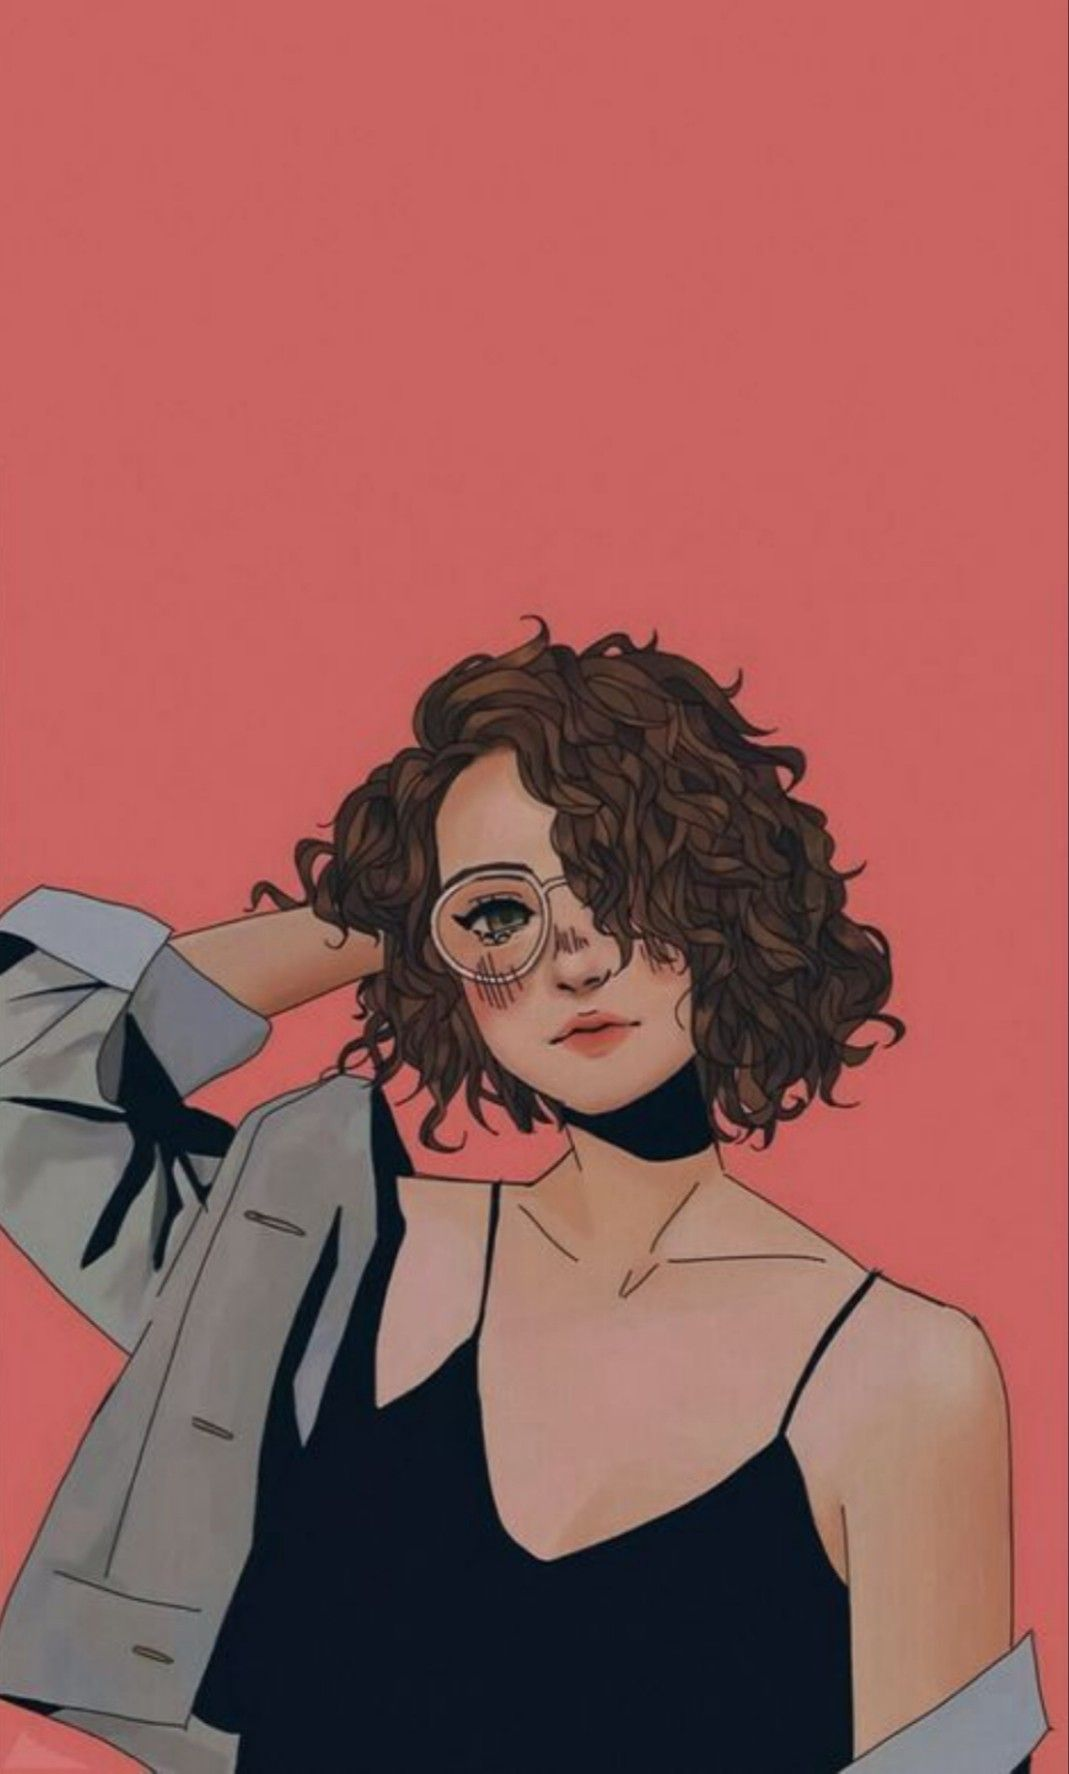 Hd Girly Wallpaper Cute Wallpaper Girl Short Hair Curly Hair Glasses Girl In 2020 Illustration Art Girl Girly Art Girls Cartoon Art